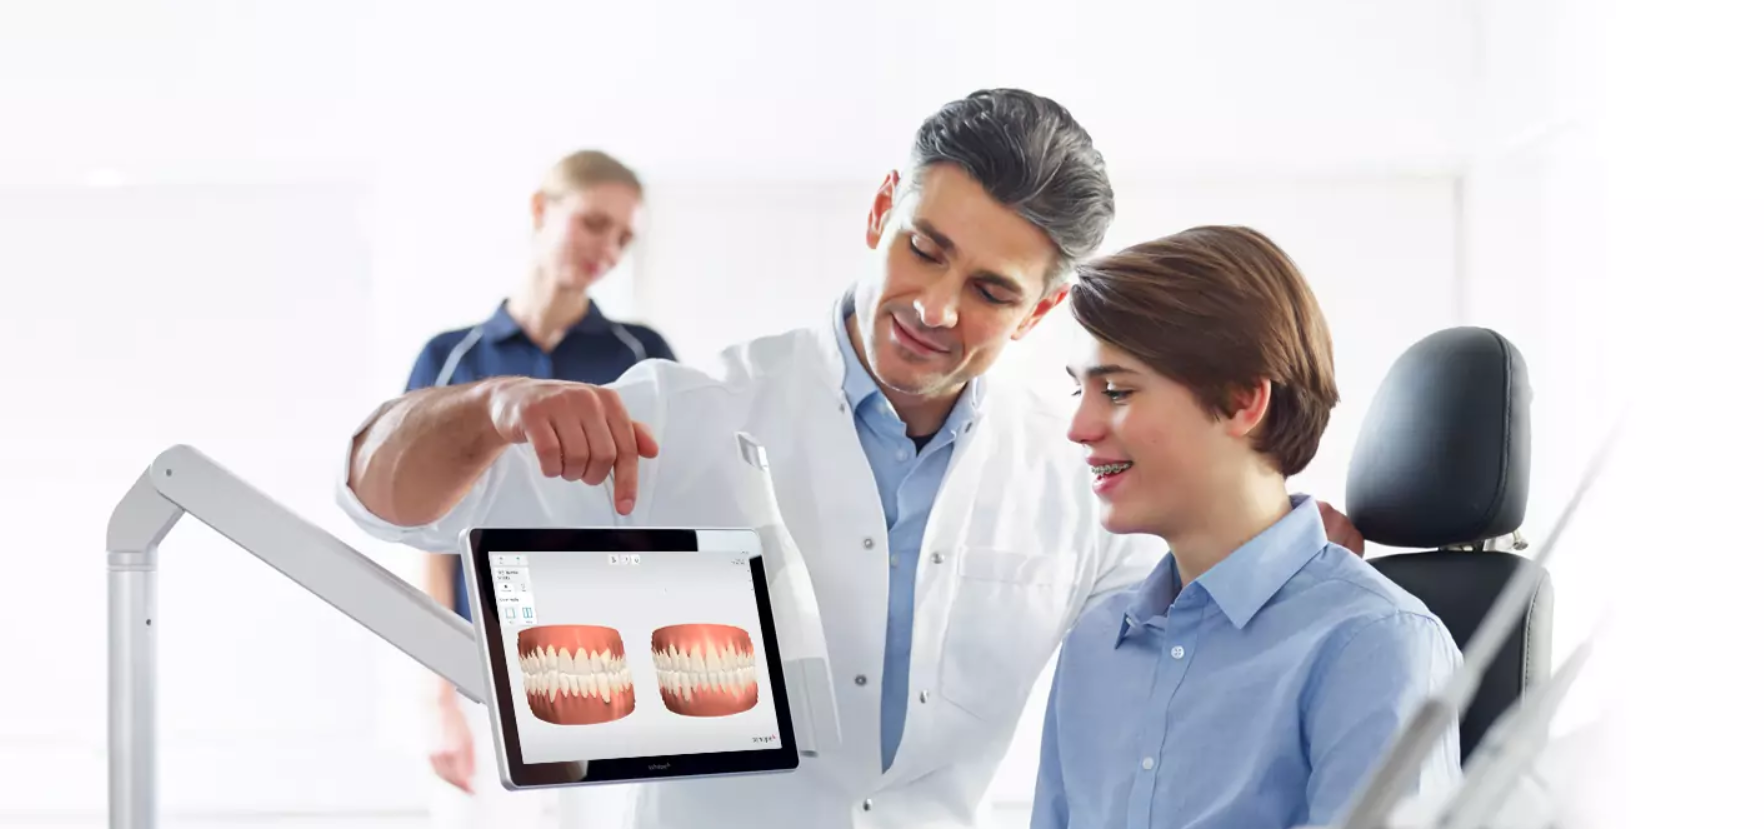 Orthodontic Treatment Made Faster And More Predictable With Digital Scanning And Design